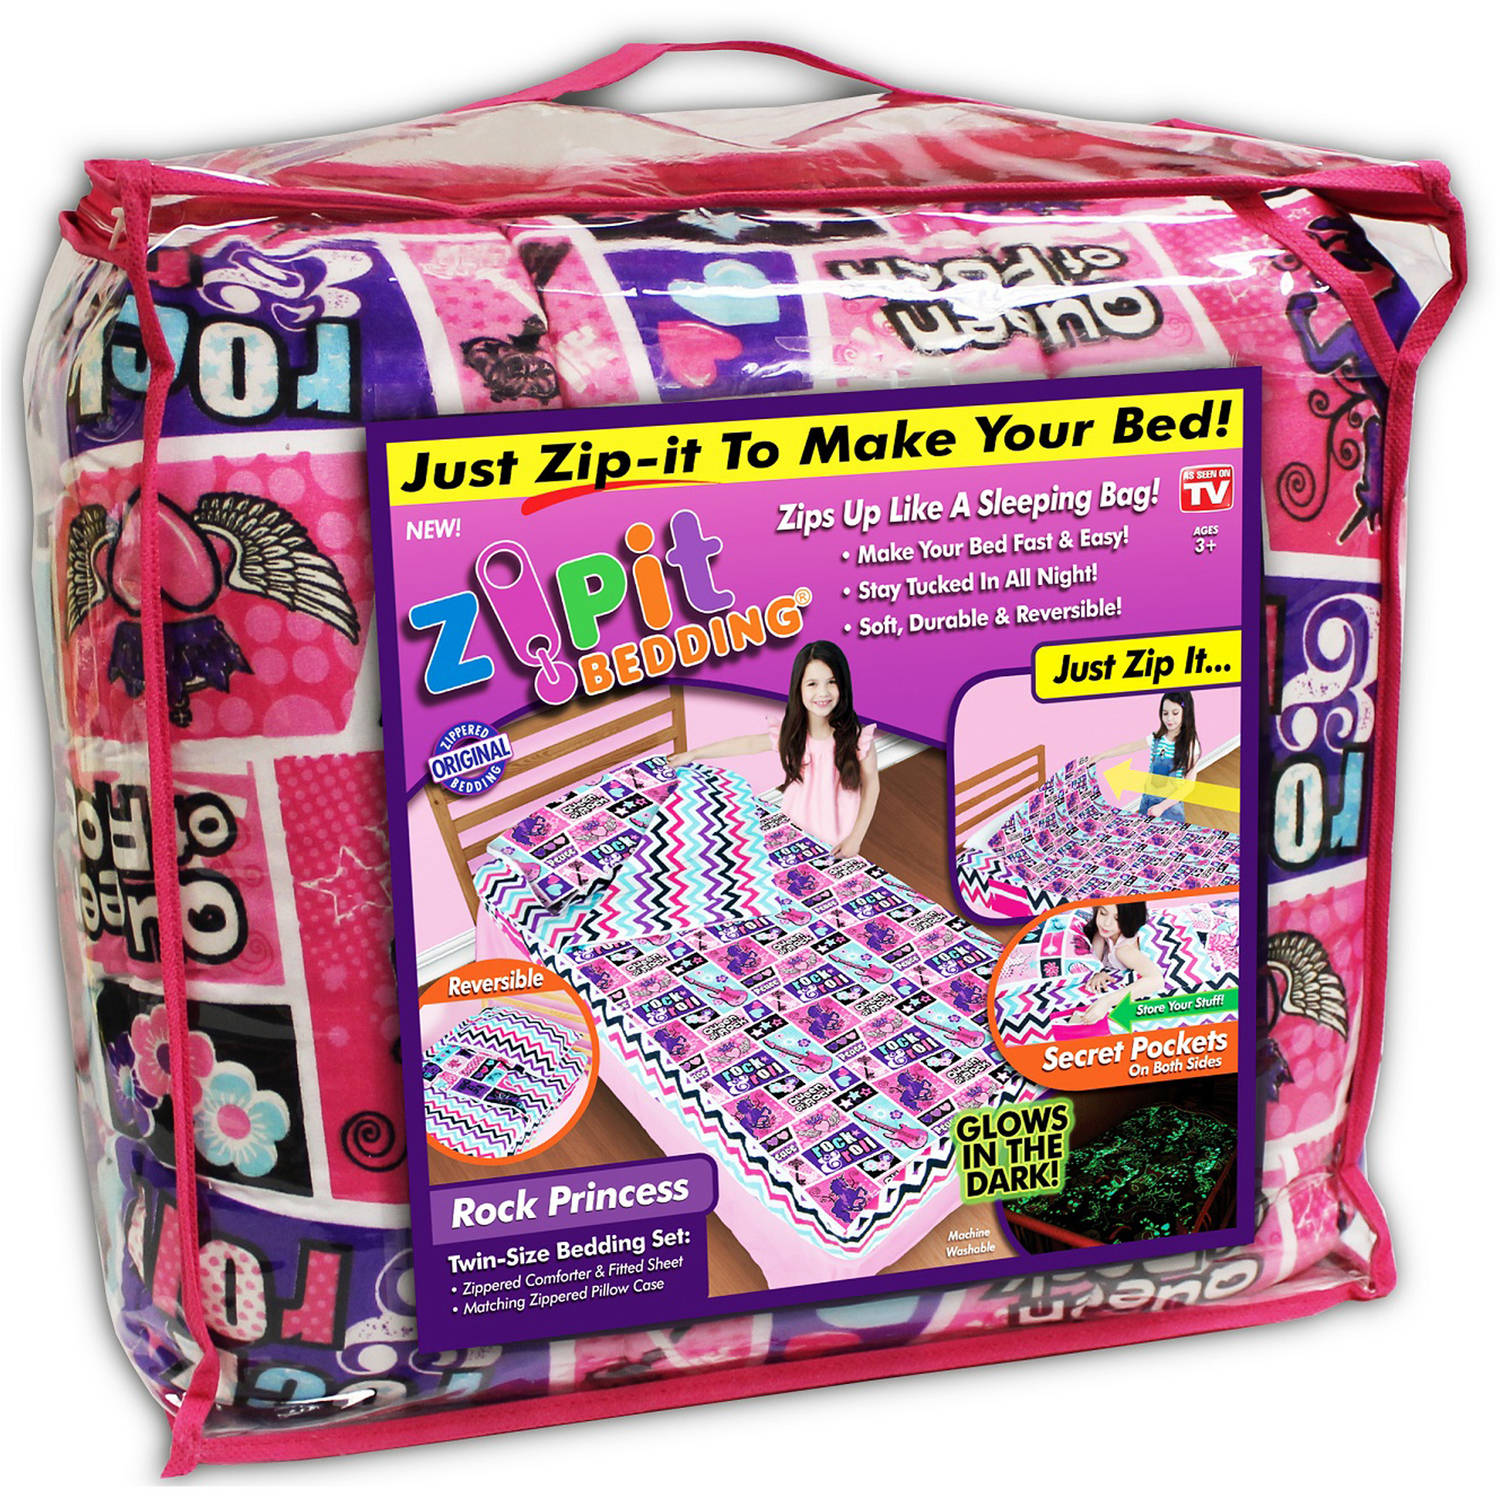 As Seen on TV Zip It Bedding, Rock Princess